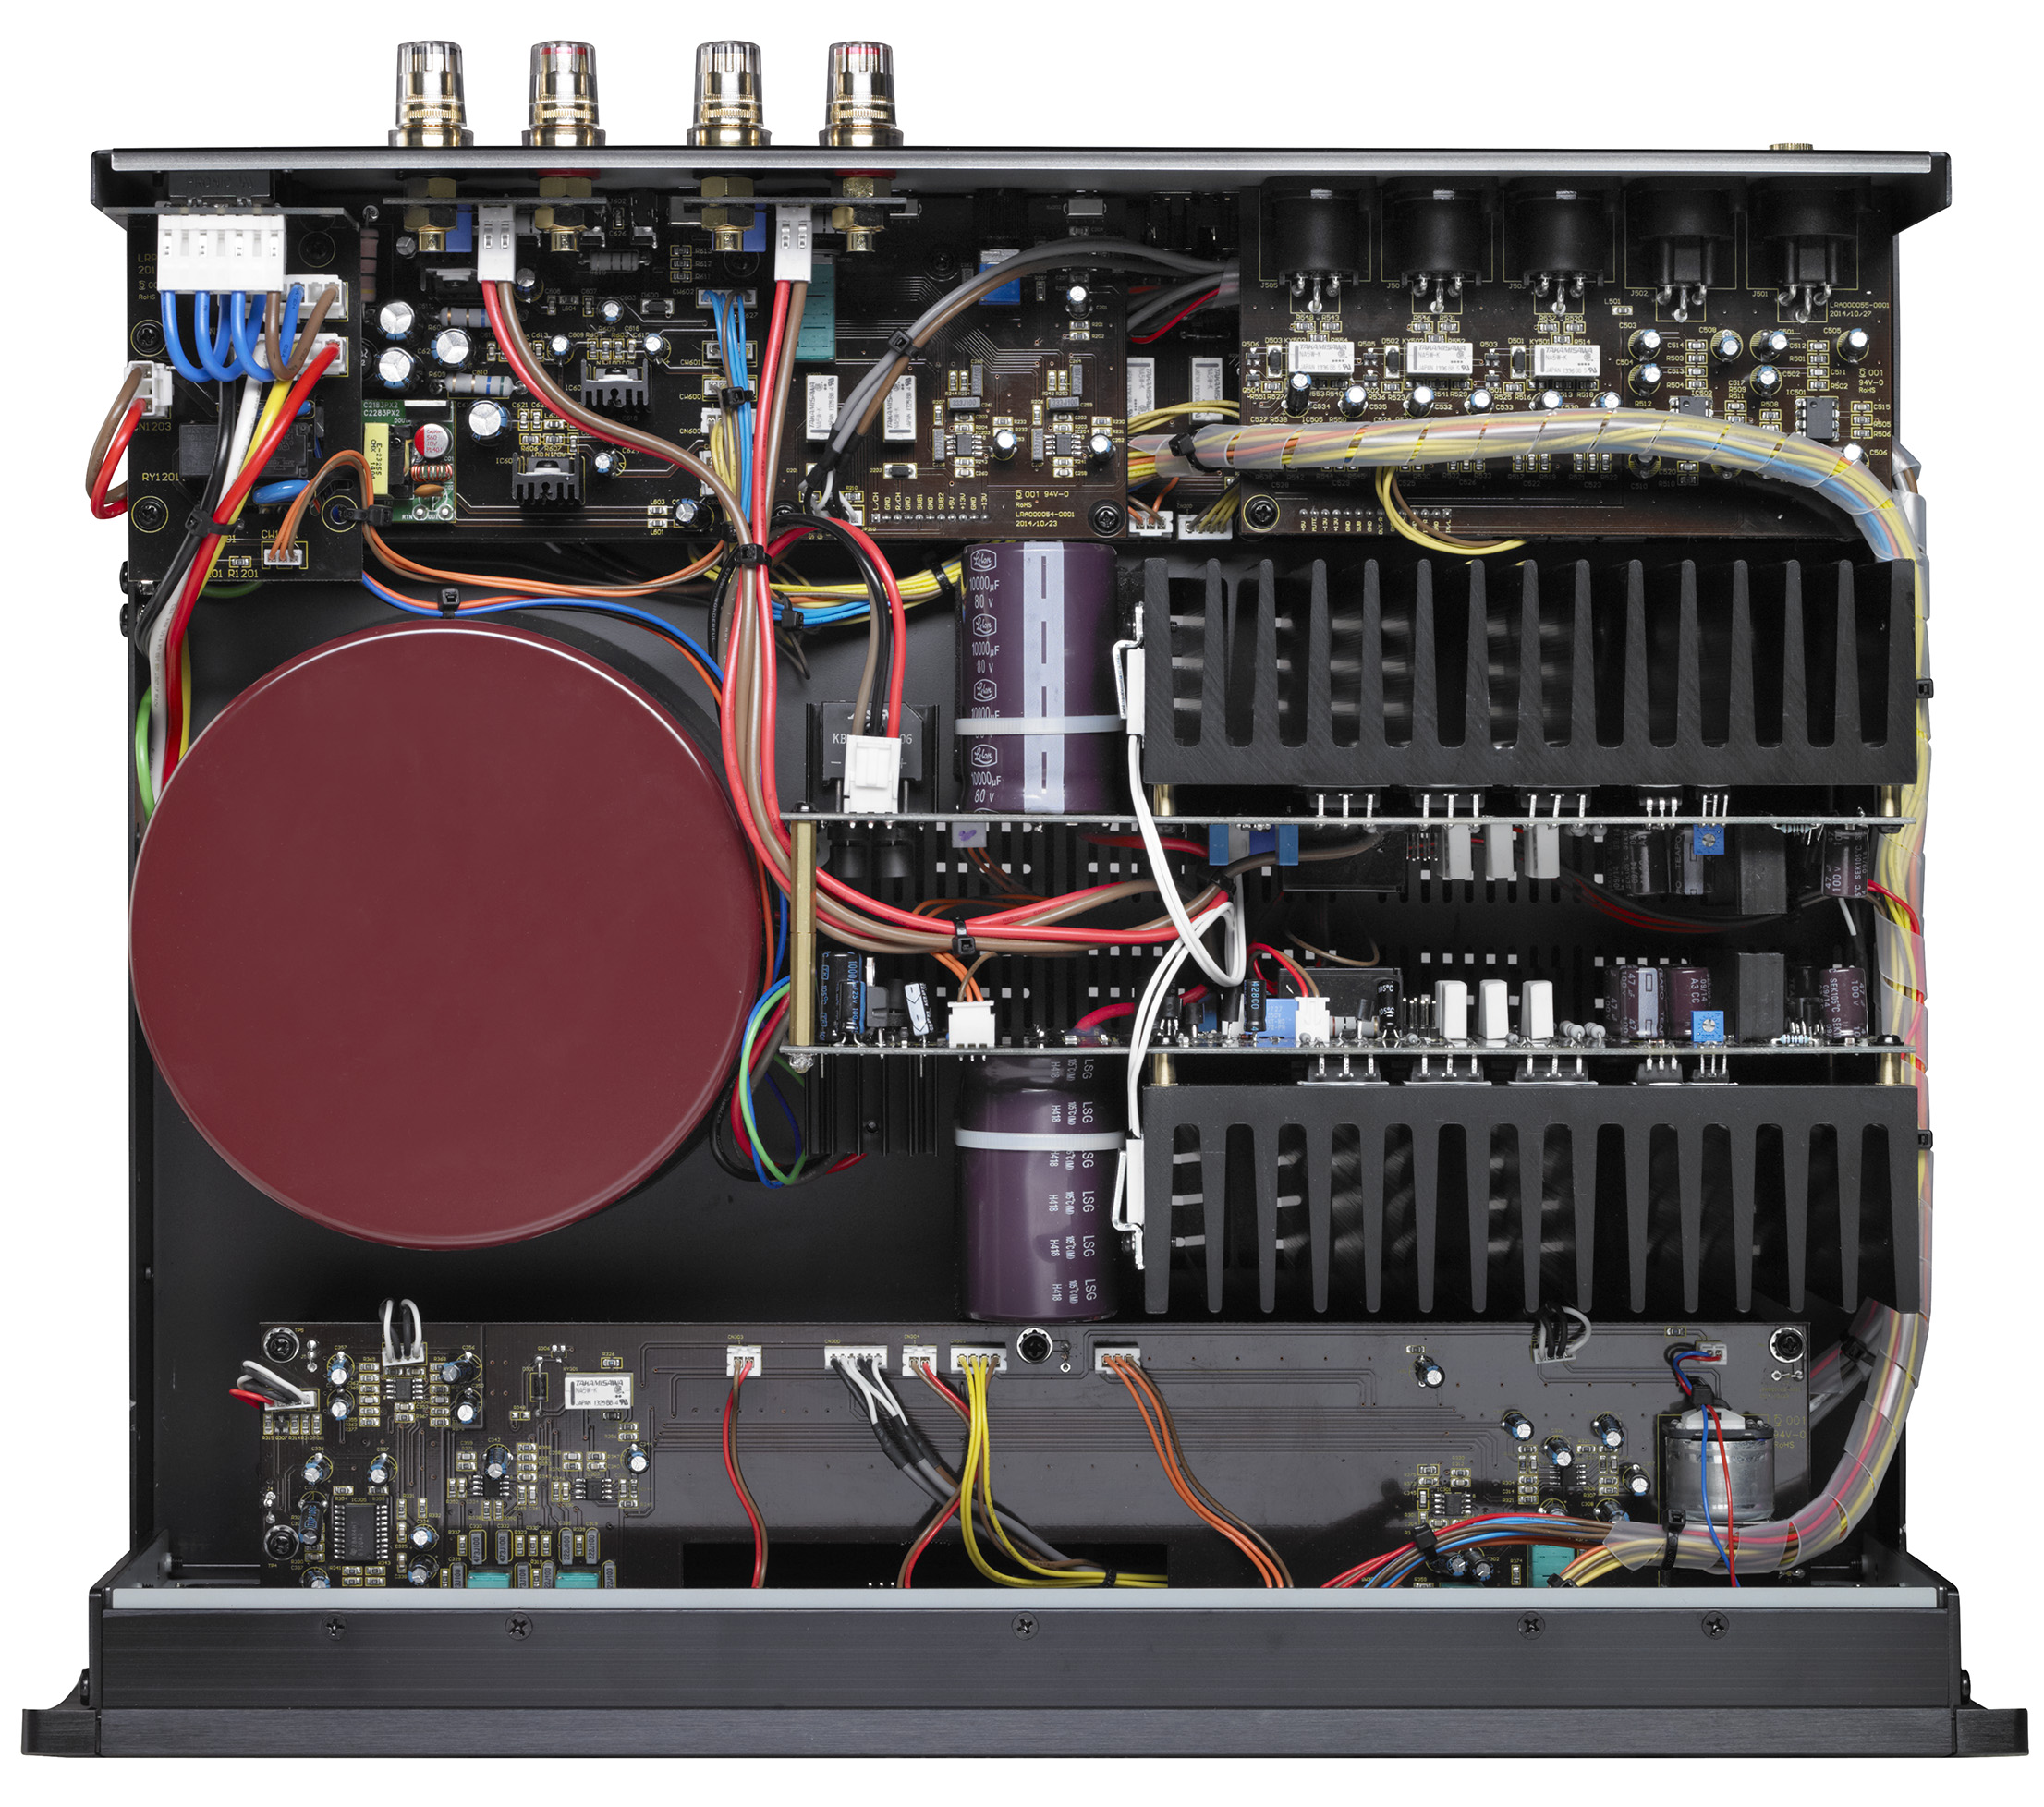 Halo By Parasound 21 Channel Integrated Amplifier 70 Watt Mosfet Audio Schematic Pictures To Pin On Pinterest Black